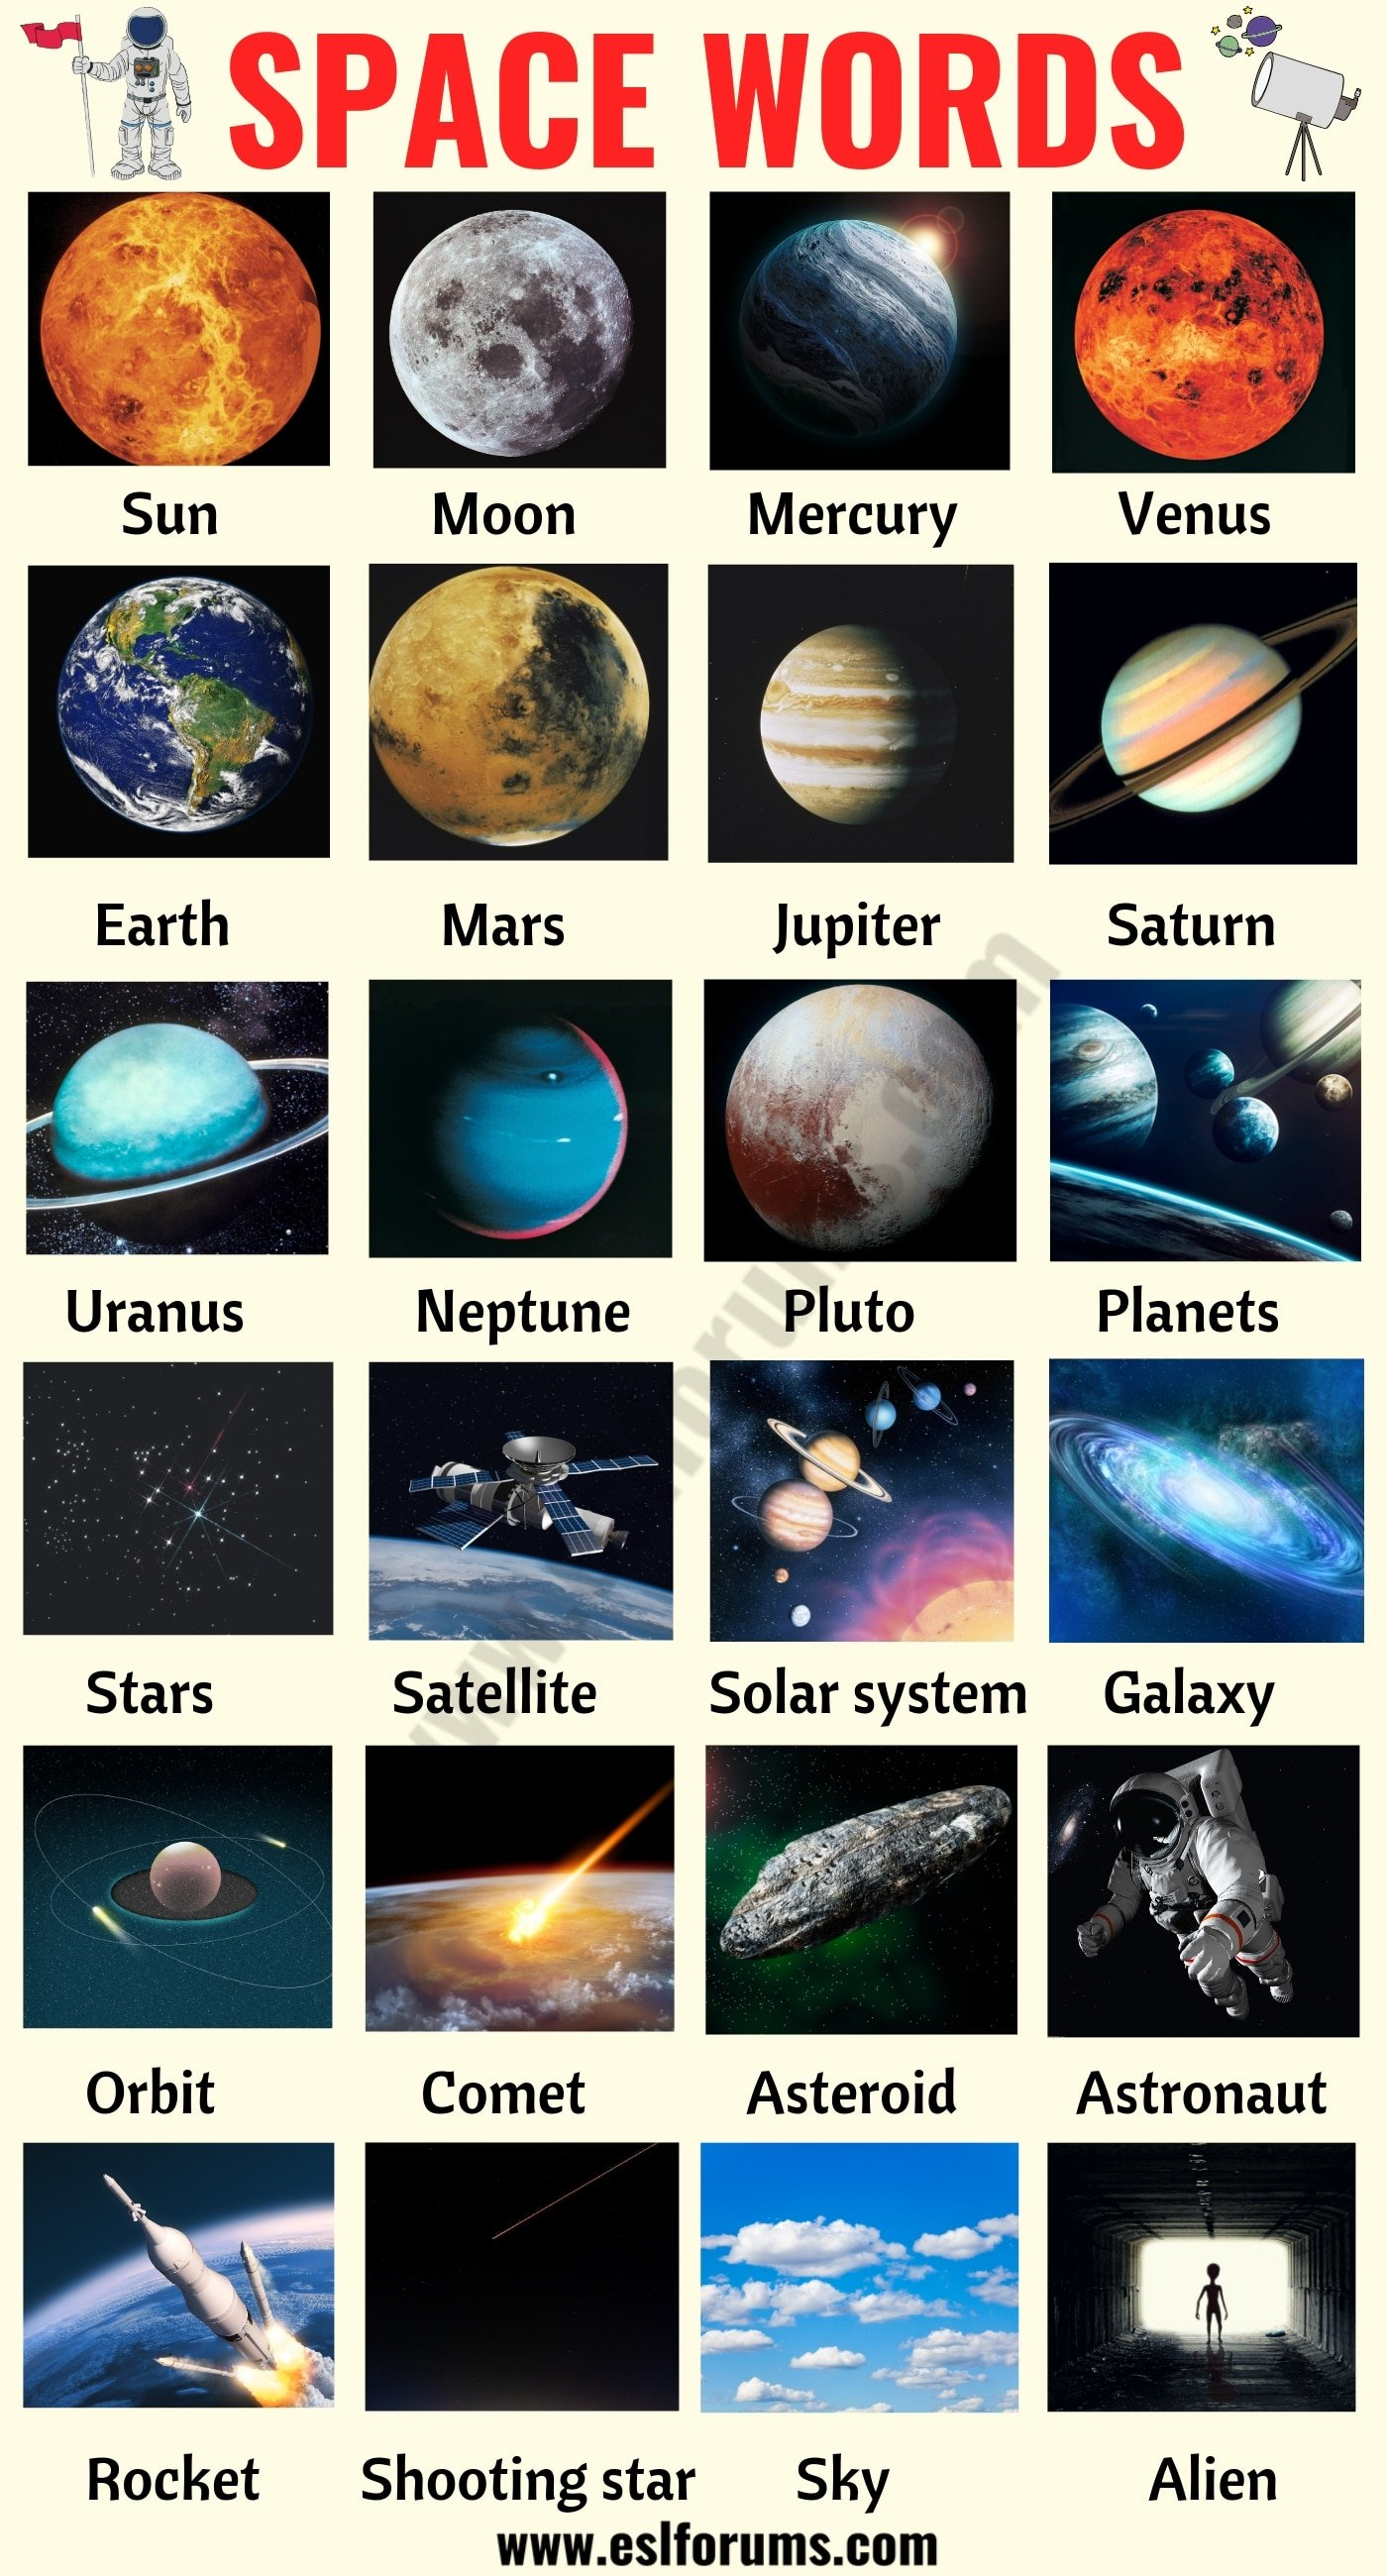 Space Words: List of 40+ Interesting Words Related to the Space